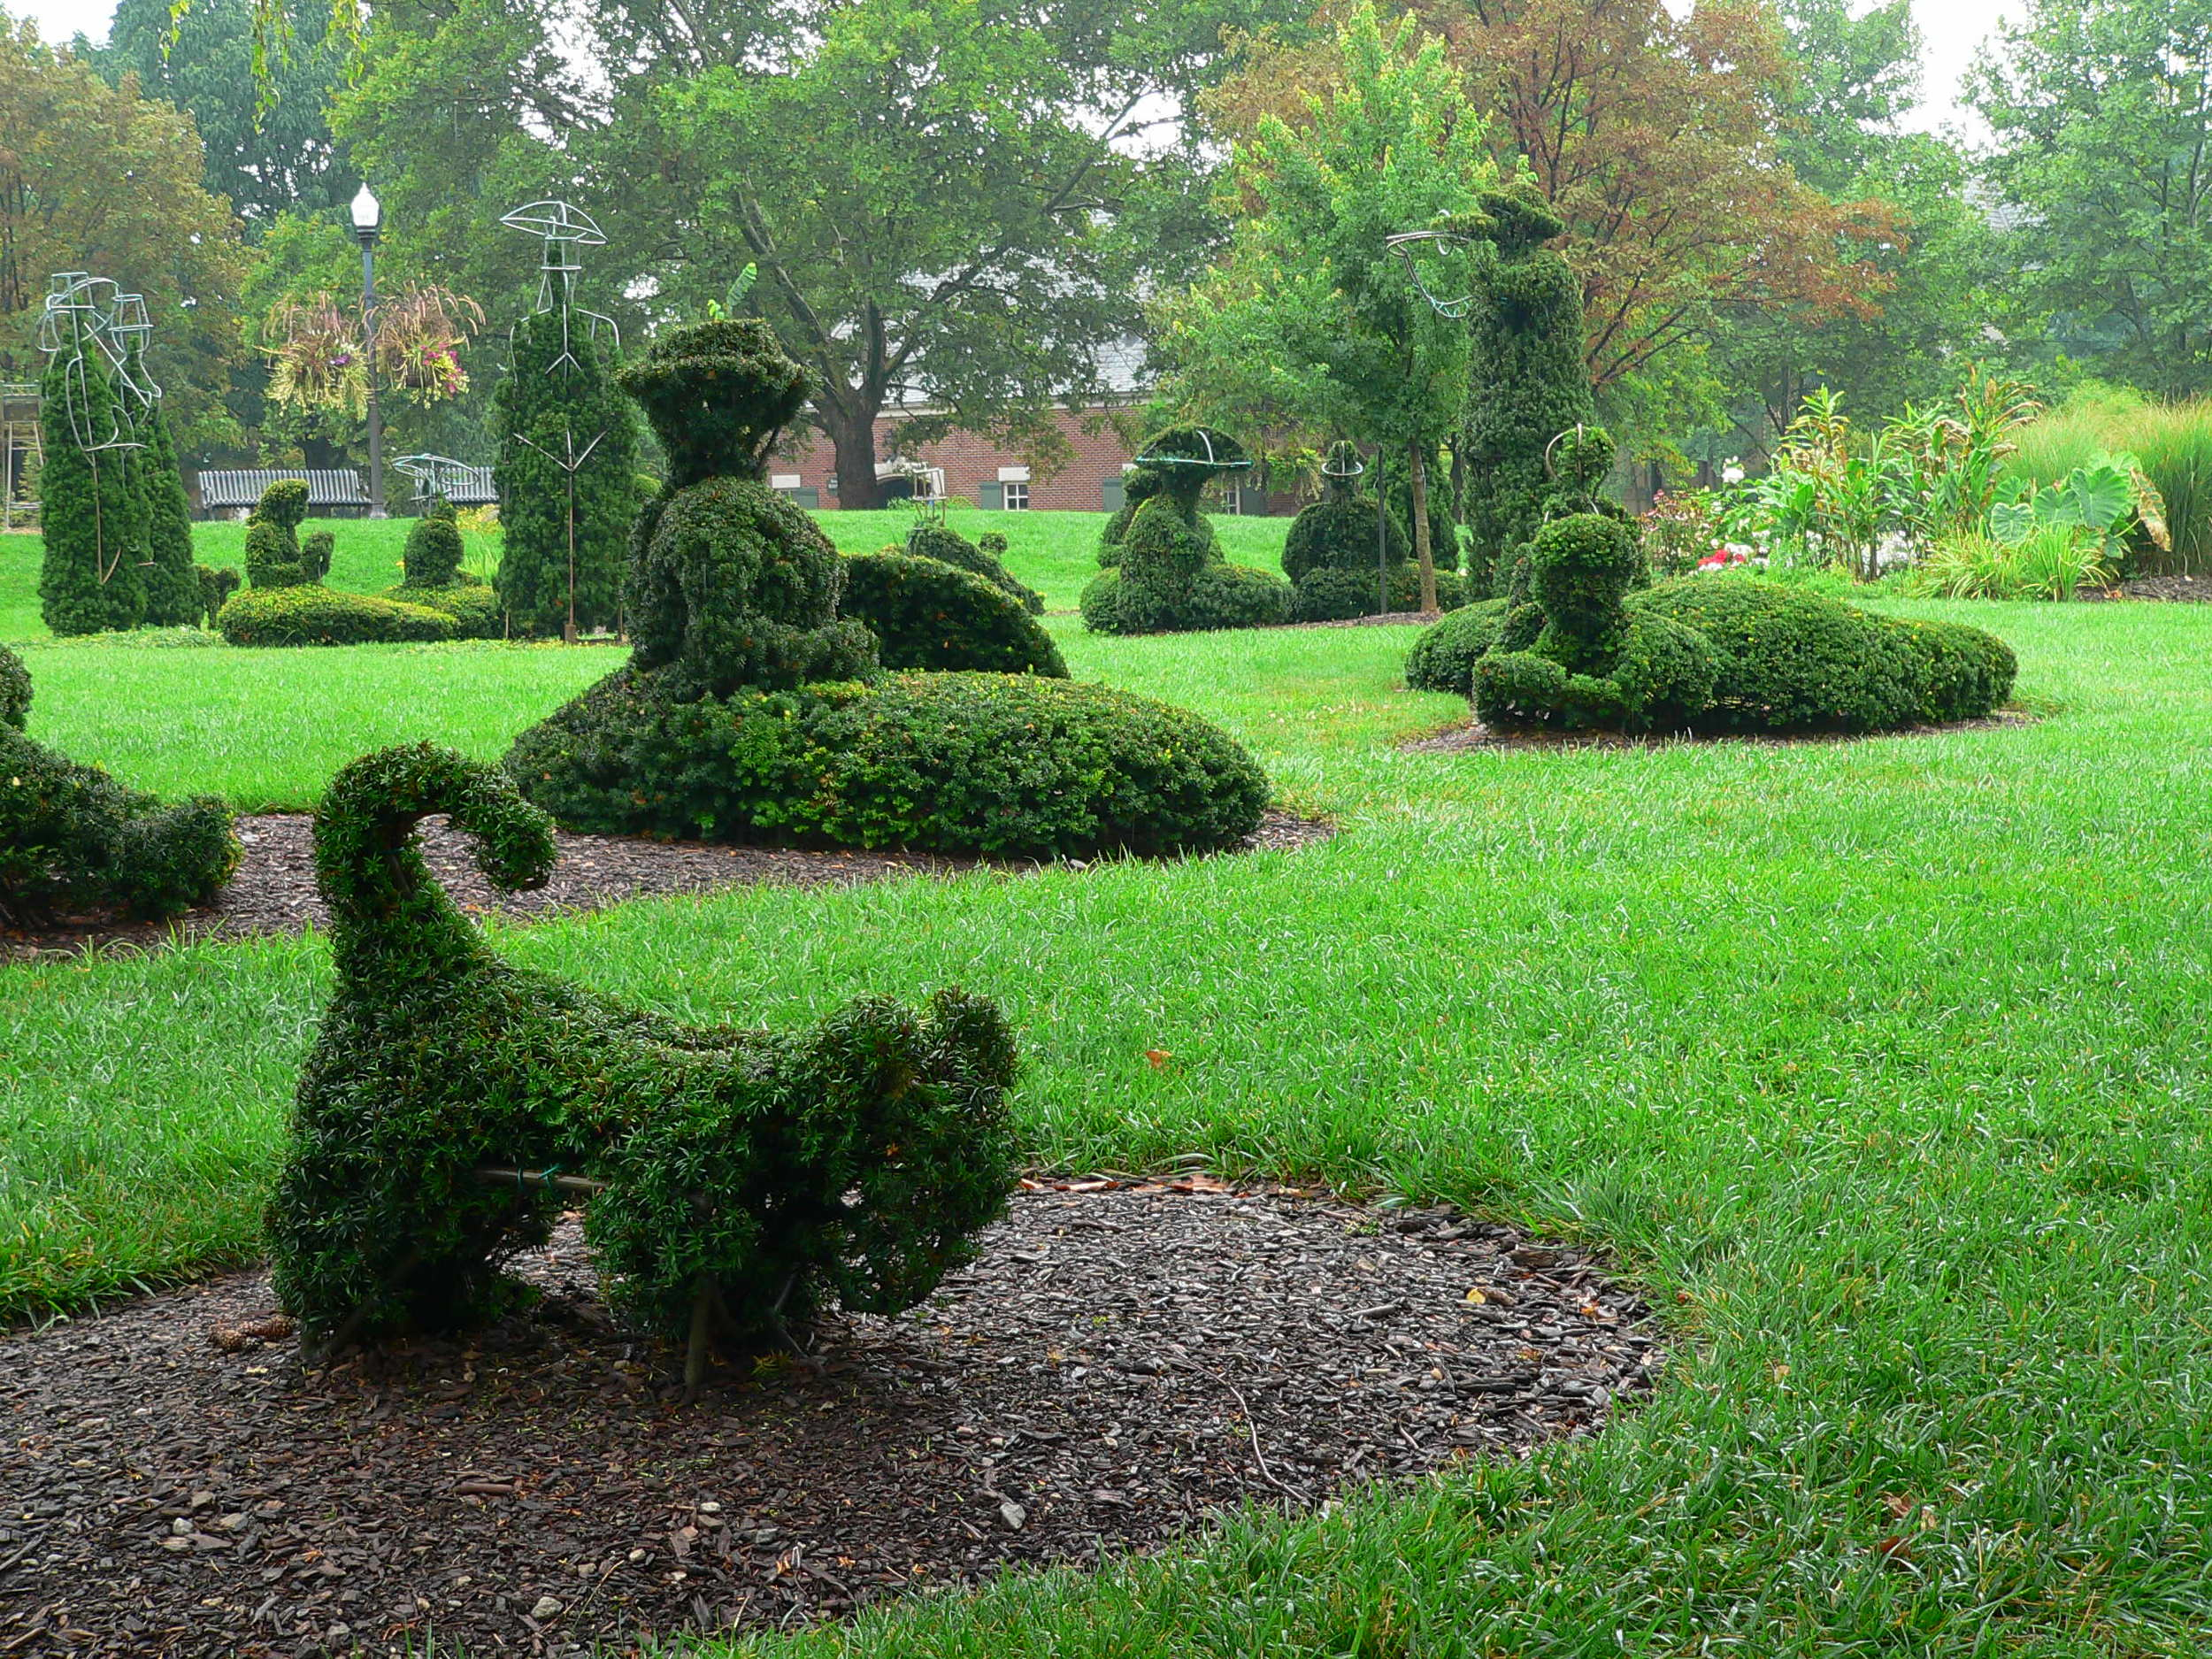 Inside the landscape of a landscape / photo courtesy of the Friends of the Topiary Park / photo by Michael Mackie